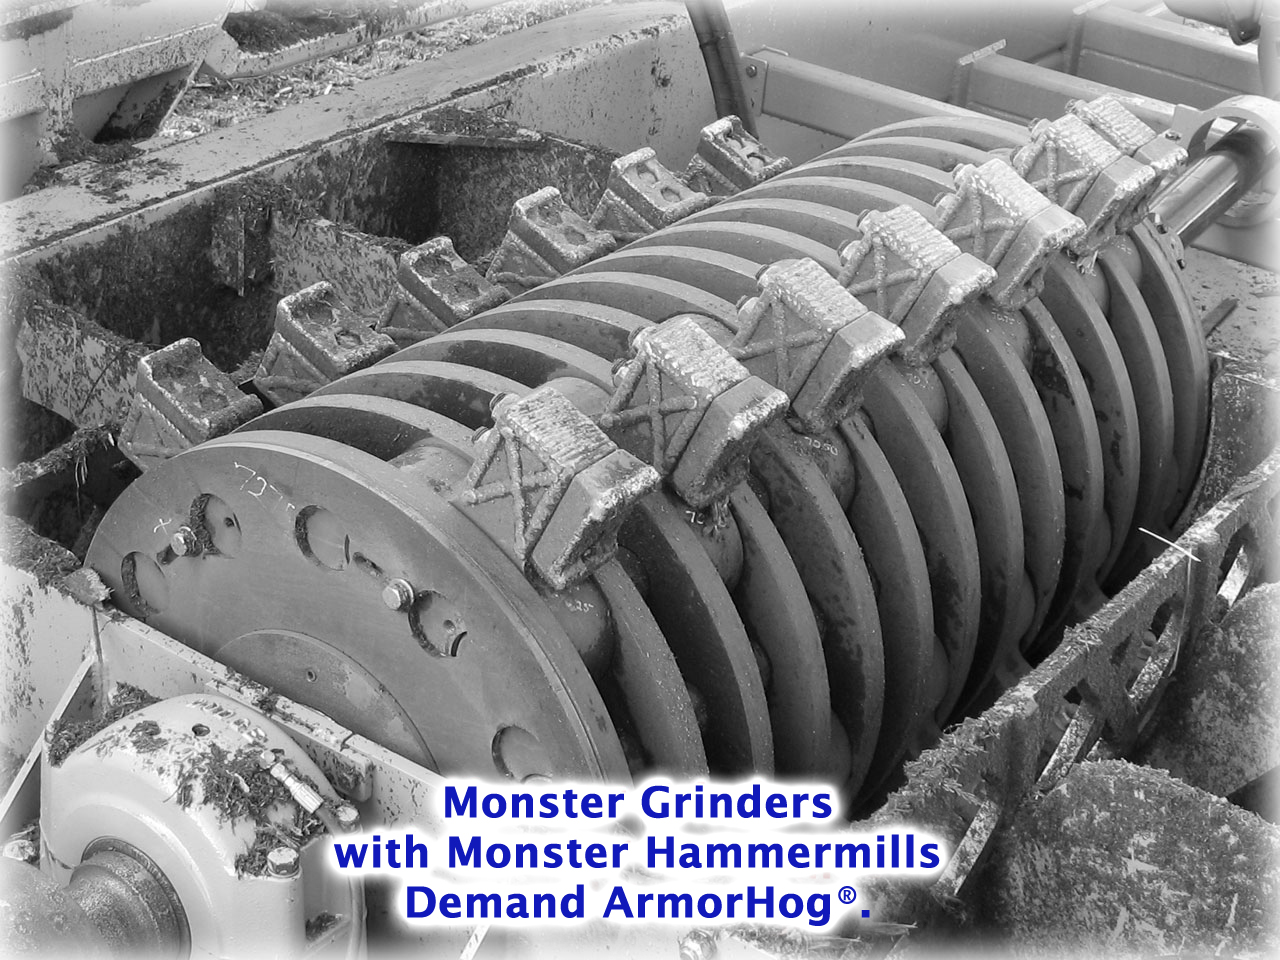 Monster Grinder Hammermills need ArmorHog